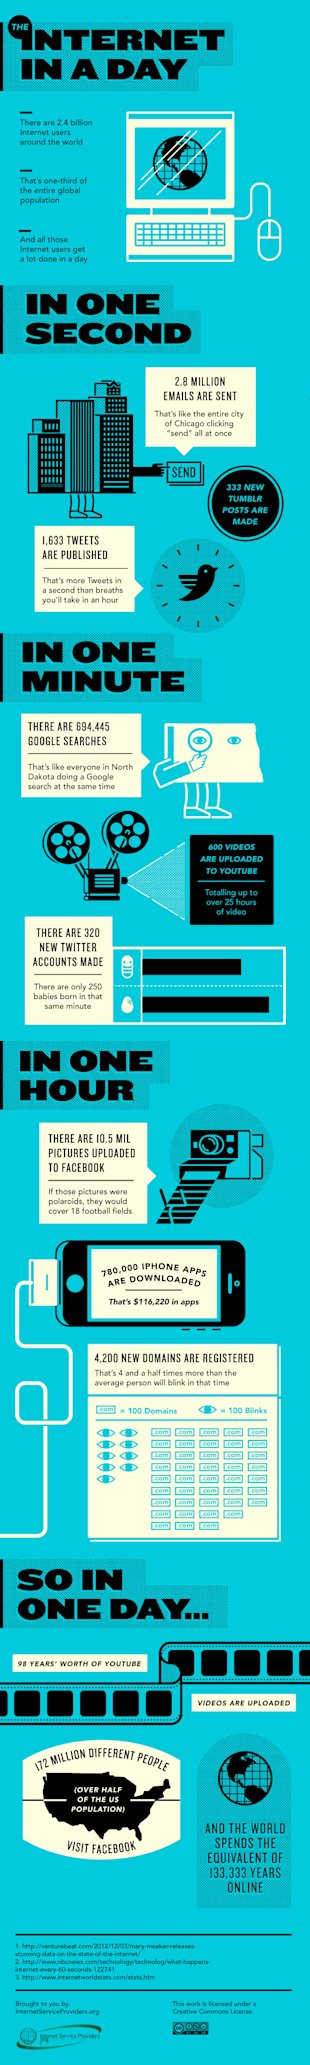 The Internet In a Day [Infographic] image 120215InternetFINAL